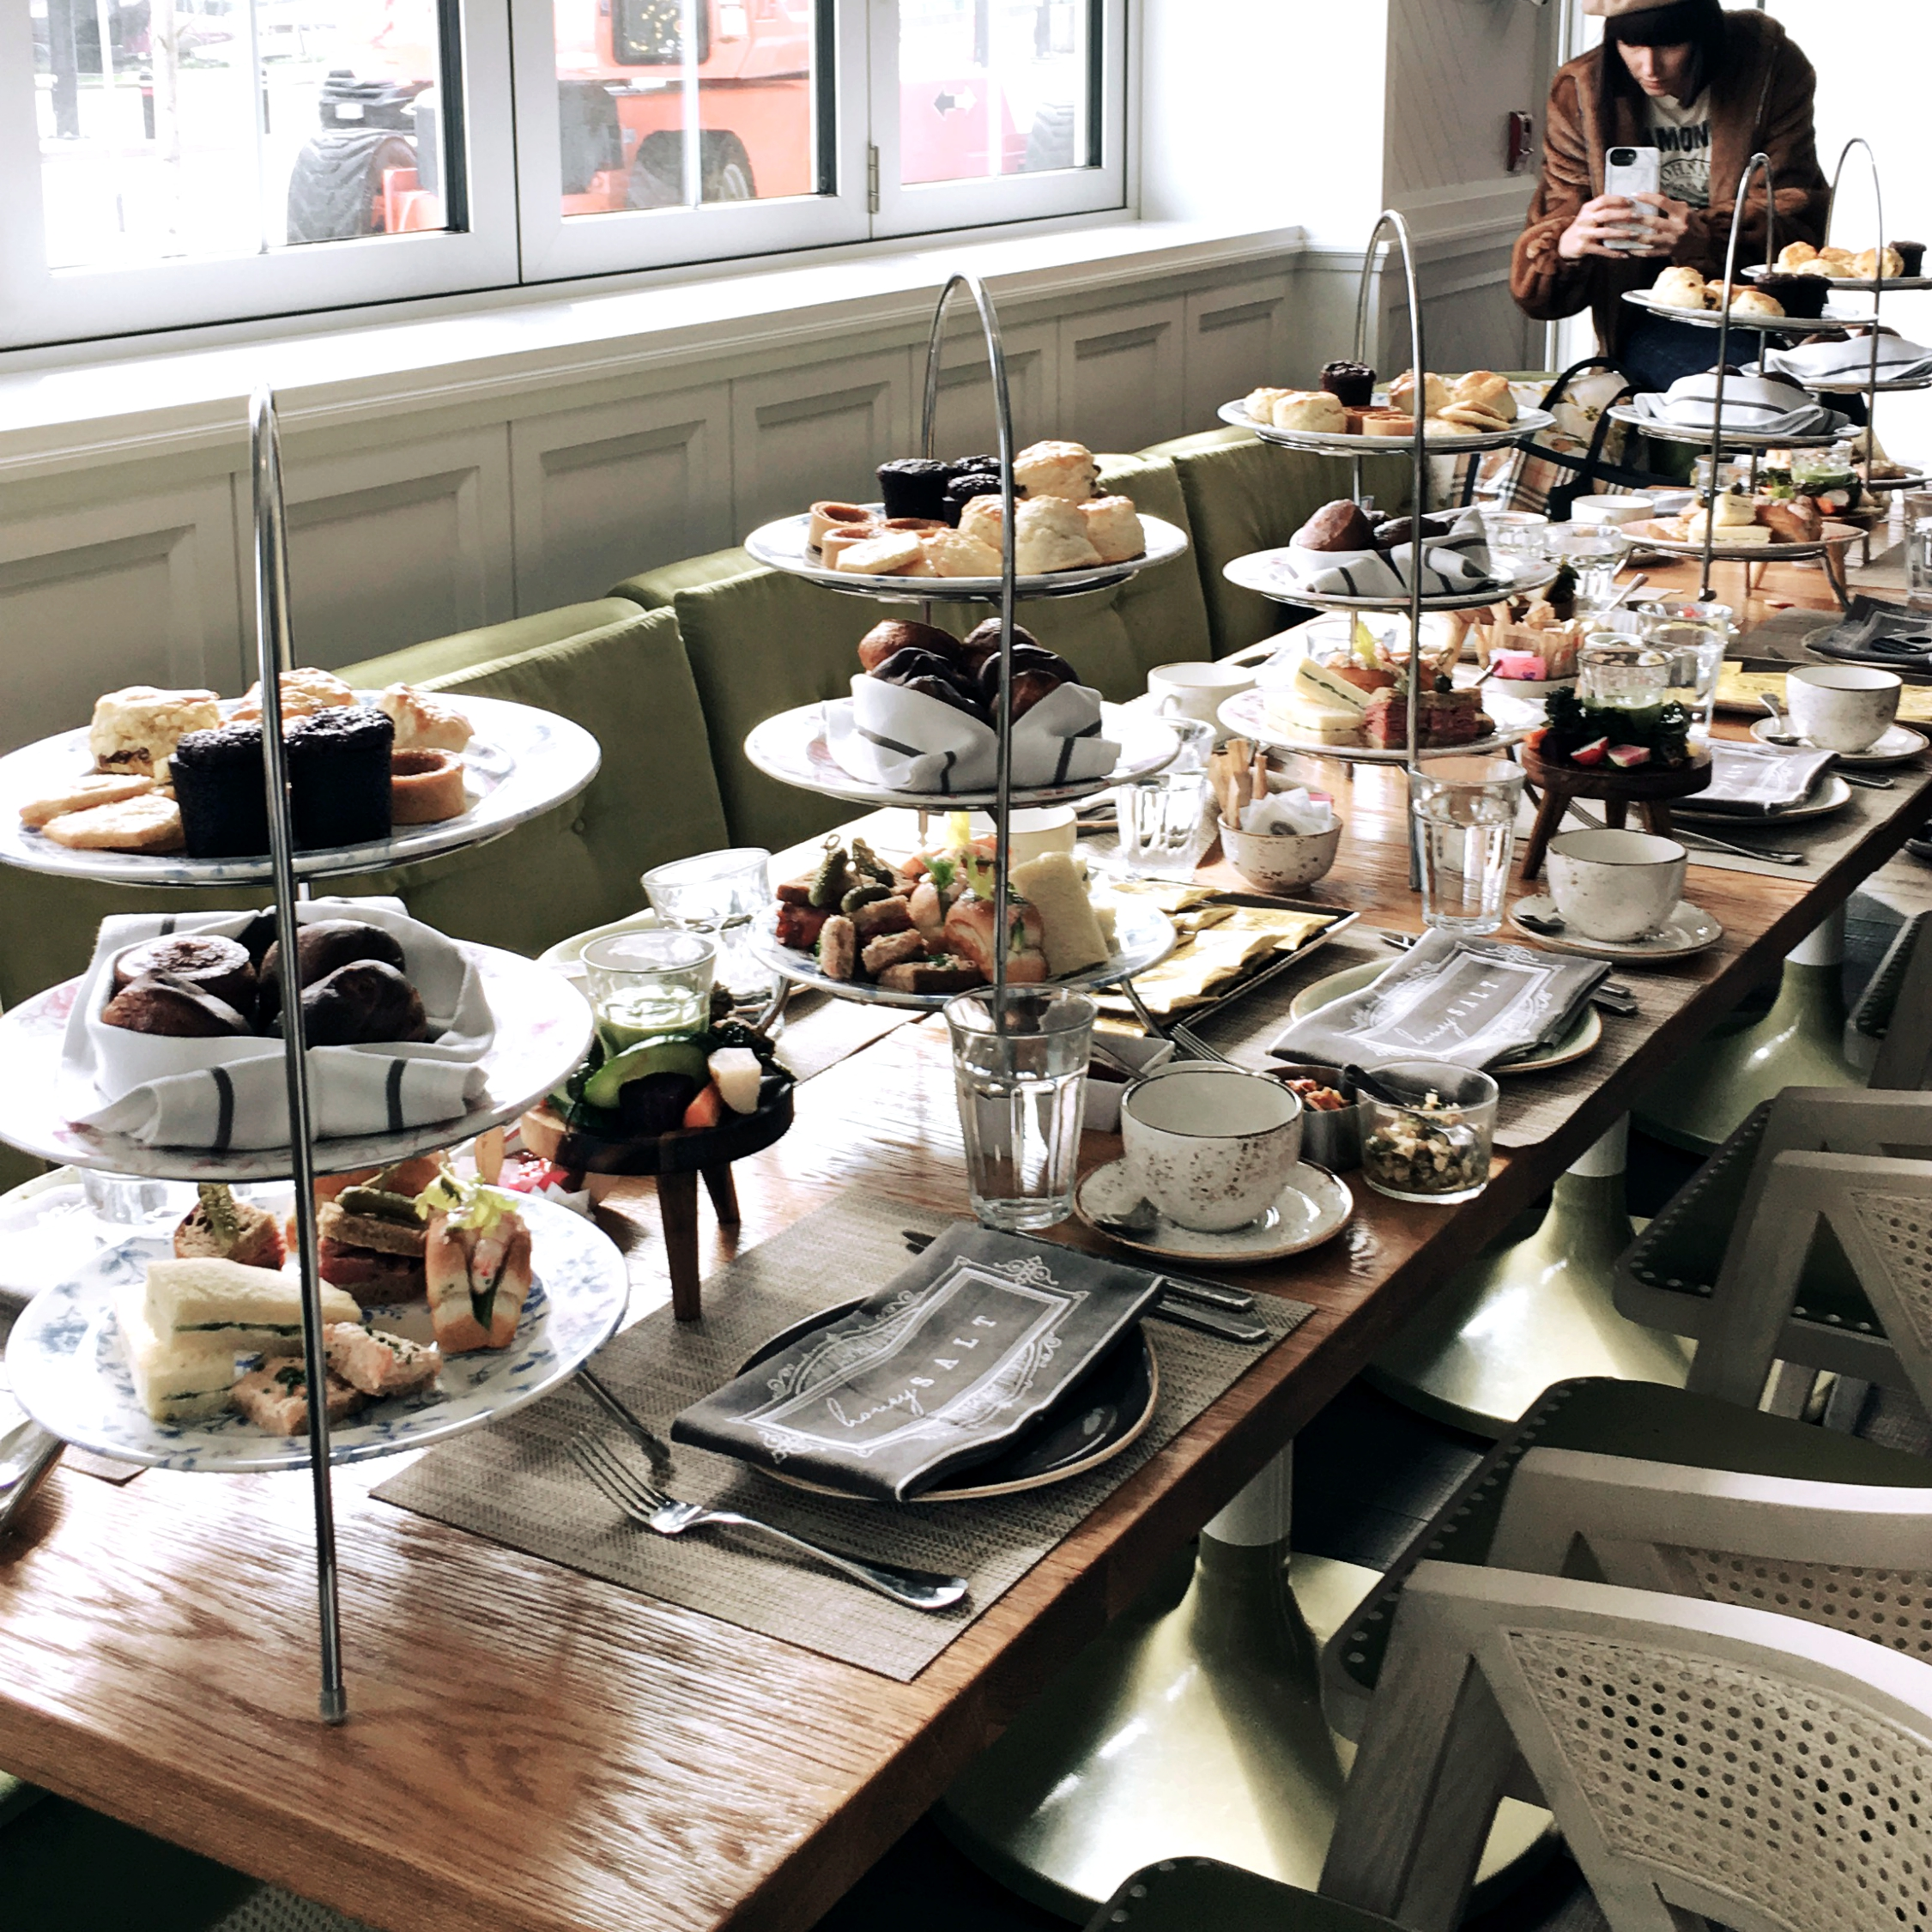 Welcome afternoon tea - CARAS/JUNO Team Introduction at Honey Salt, located at Parq Vancouver.Got to enjoy some lovely conversations over their finest teas, savory bites, sweet tiers and the most delicious crepes!I absolutely stuffed my face with carbs and felt like I had a food baby after. #TreatYoSelf